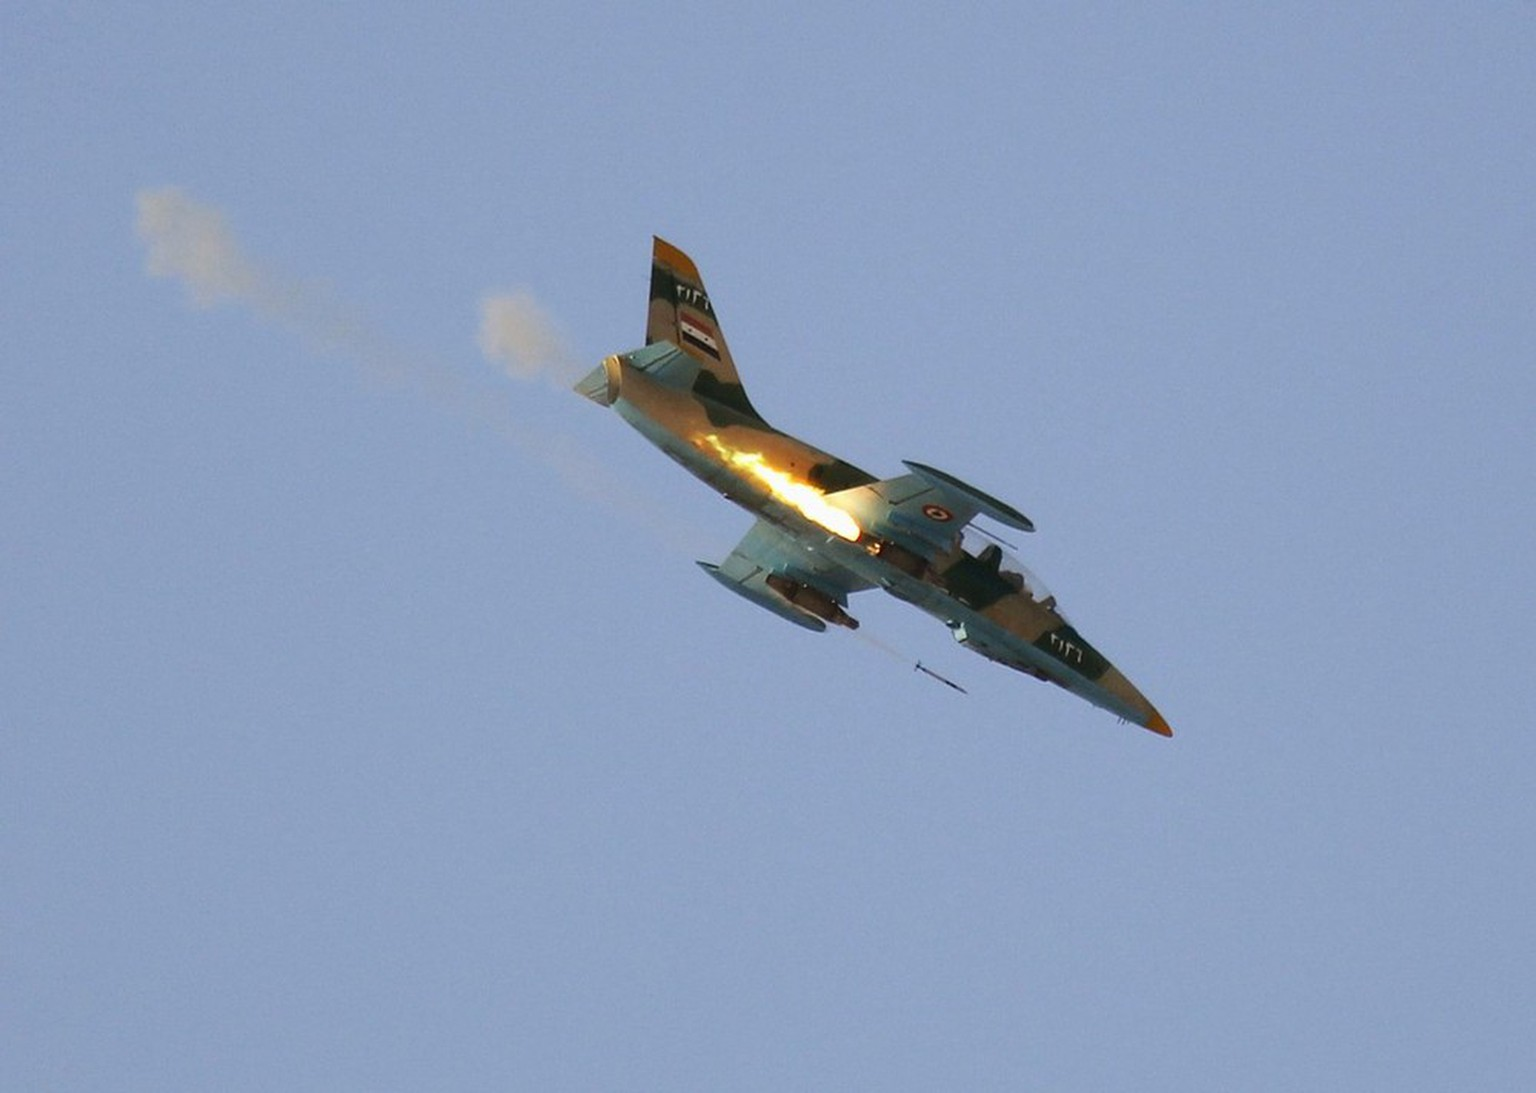 A Syrian Air Force fighter plane fires a rocket during an air strike in the village of Tel Rafat, some 37 km (23 miles) north of Aleppo, August 9, 2012. Syrian troops and rebels fought over the country's biggest city Aleppo as President Bashar al-Assad's key foreign backer Iran gathered ministers from like-minded states for talks on Thursday about how to end the conflict. REUTERS/Goran Tomasevic (SYRIA - Tags: MILITARY CIVIL UNREST TPX IMAGES OF THE DAY)